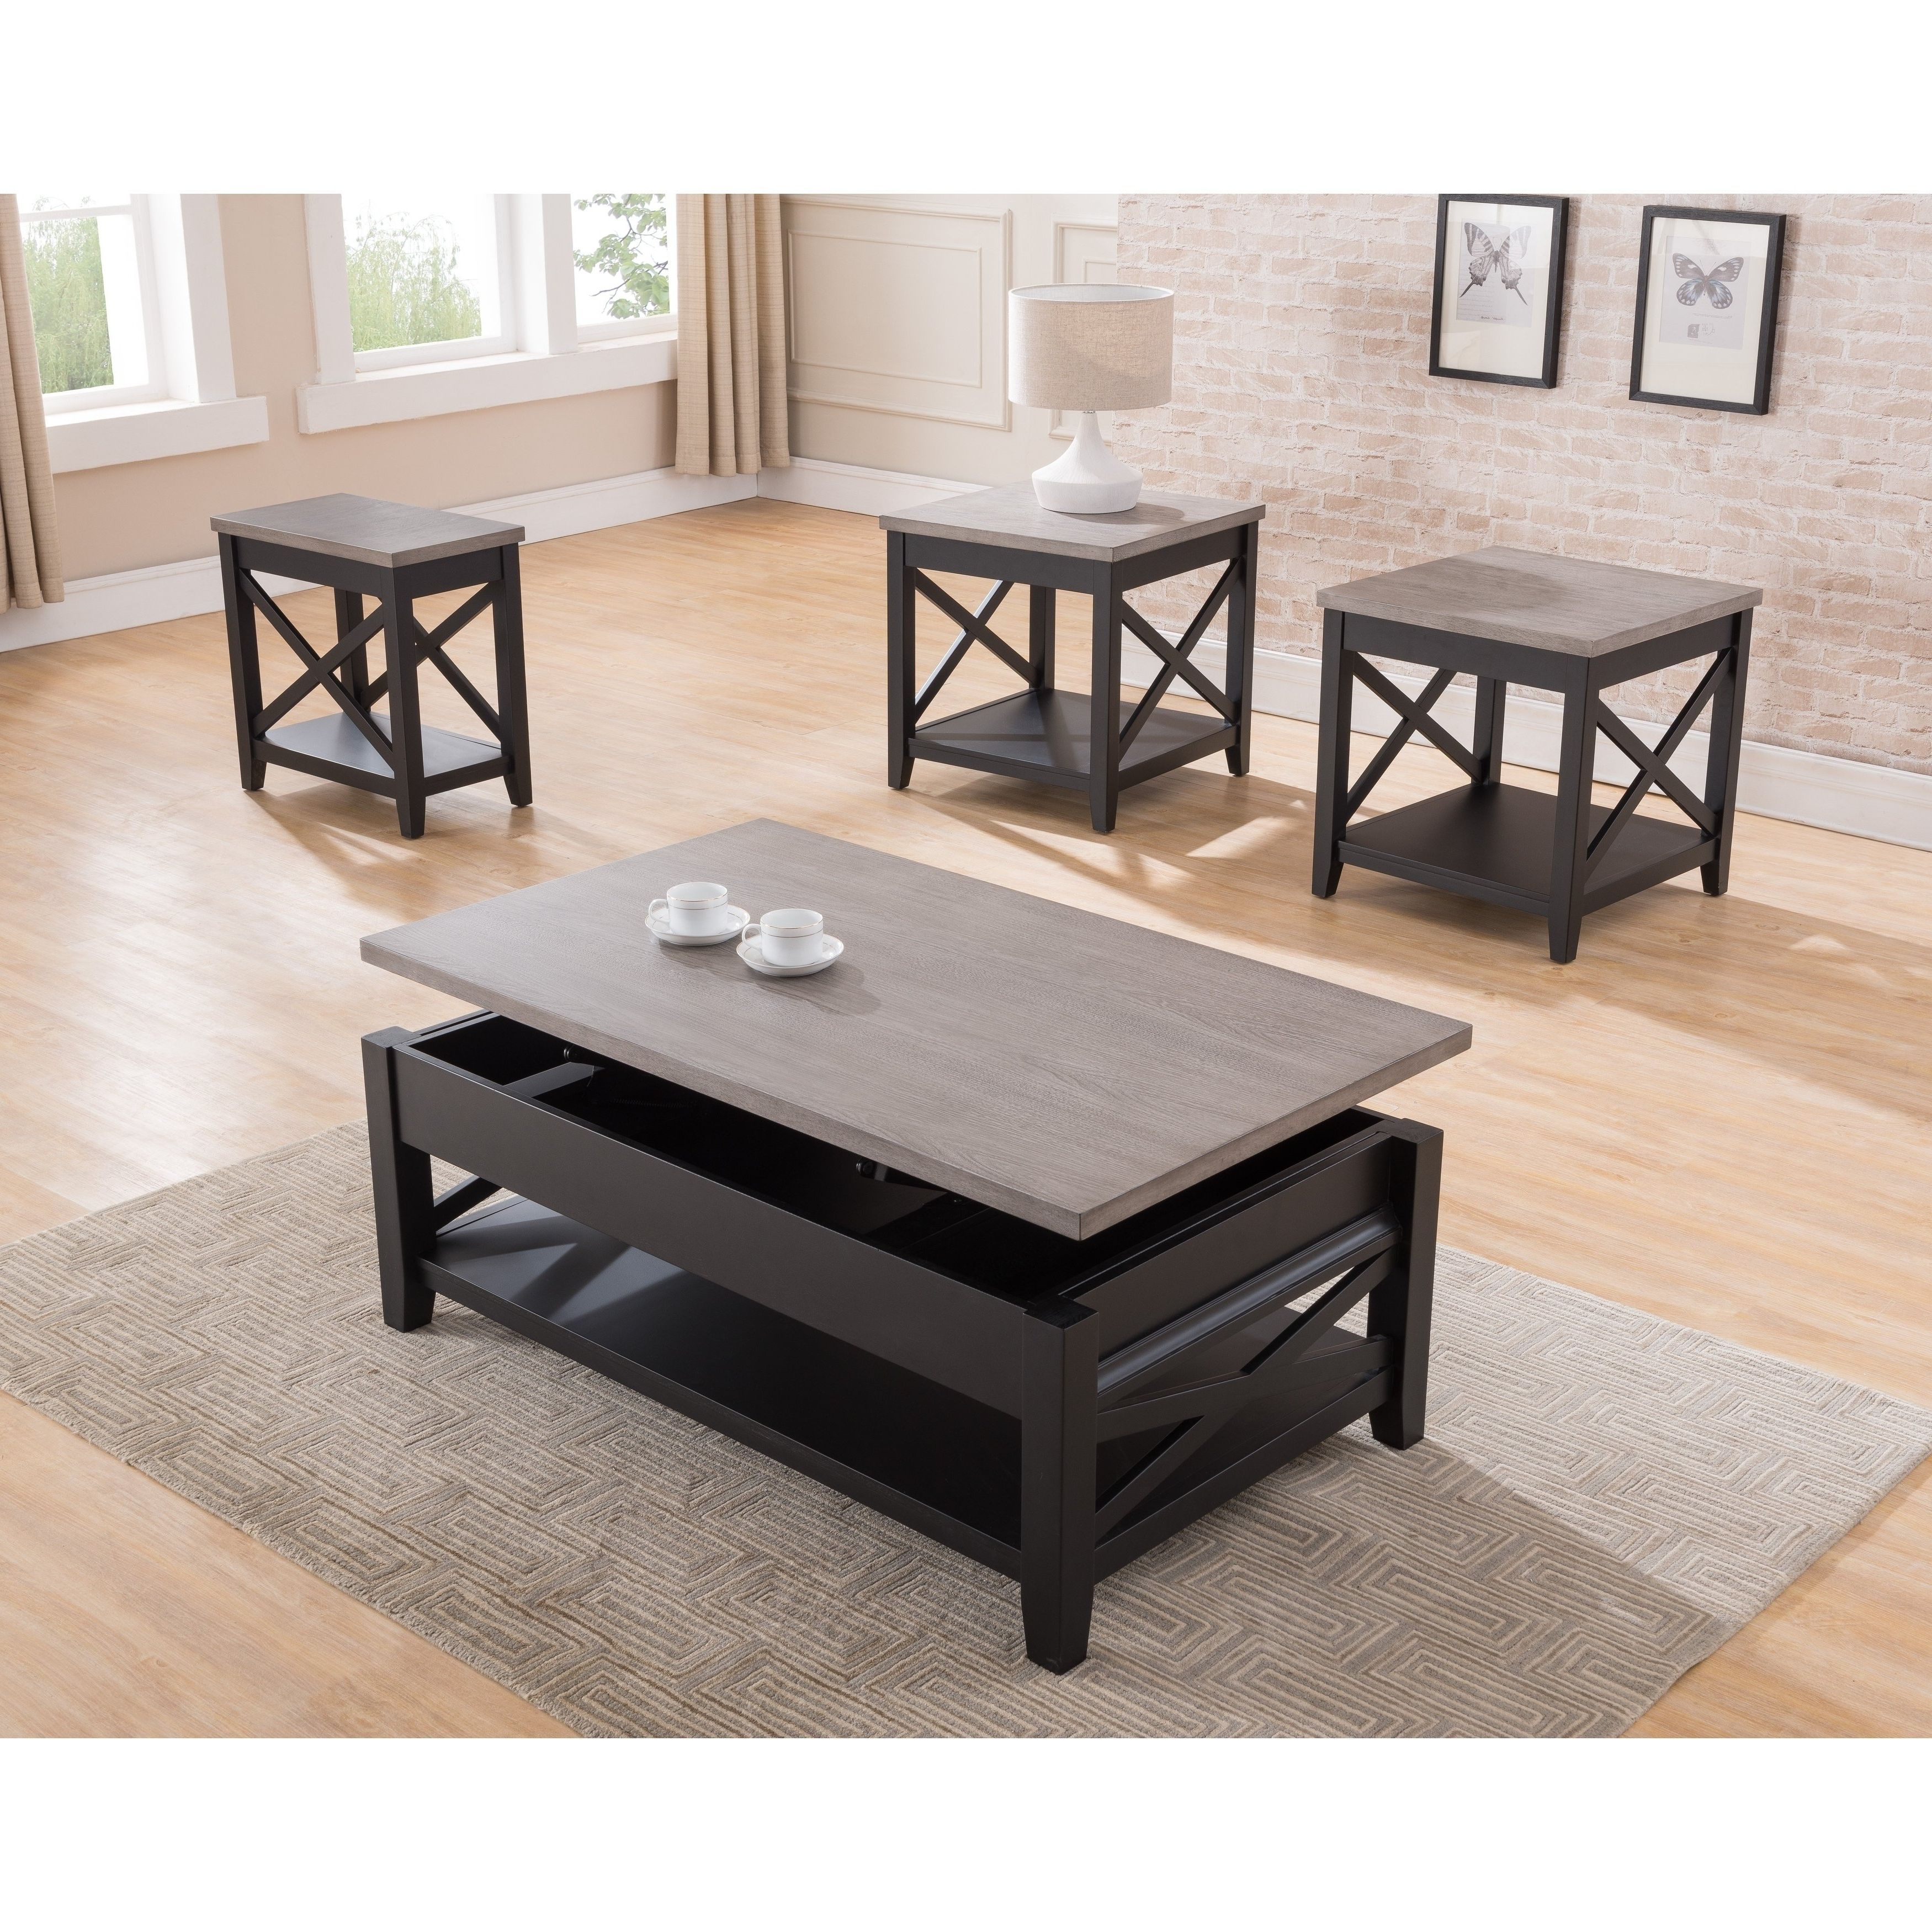 Current Grant Lift Top Cocktail Tables With Casters With Shop Simmons Casegoods Black And Grey Lift Top Cocktail Table – Free (View 7 of 20)